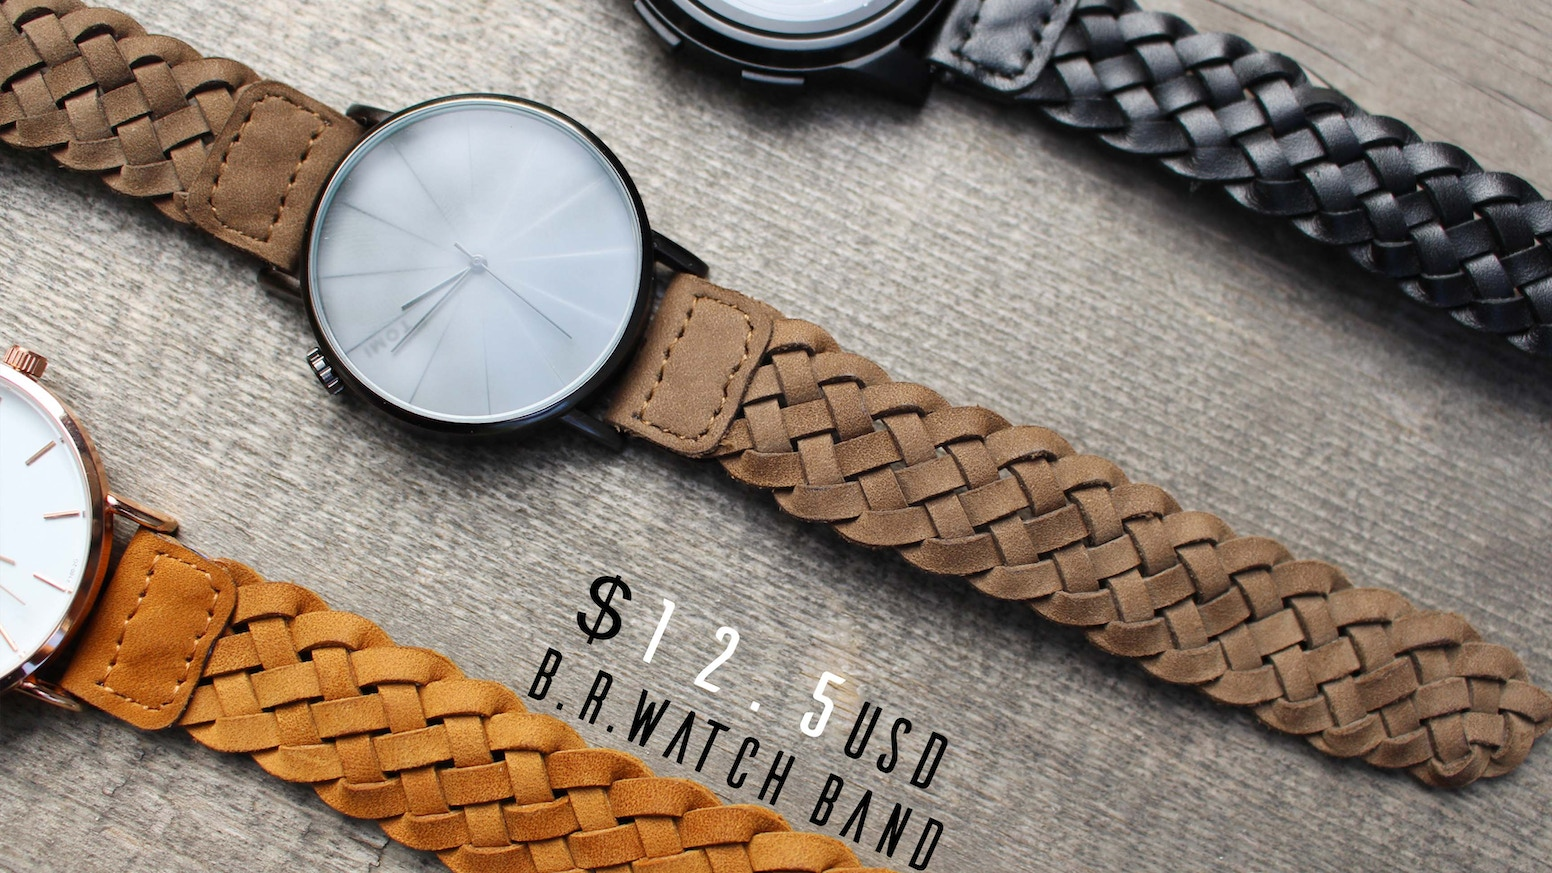 B R  watch band: Braid band improved, a quickstarter project by